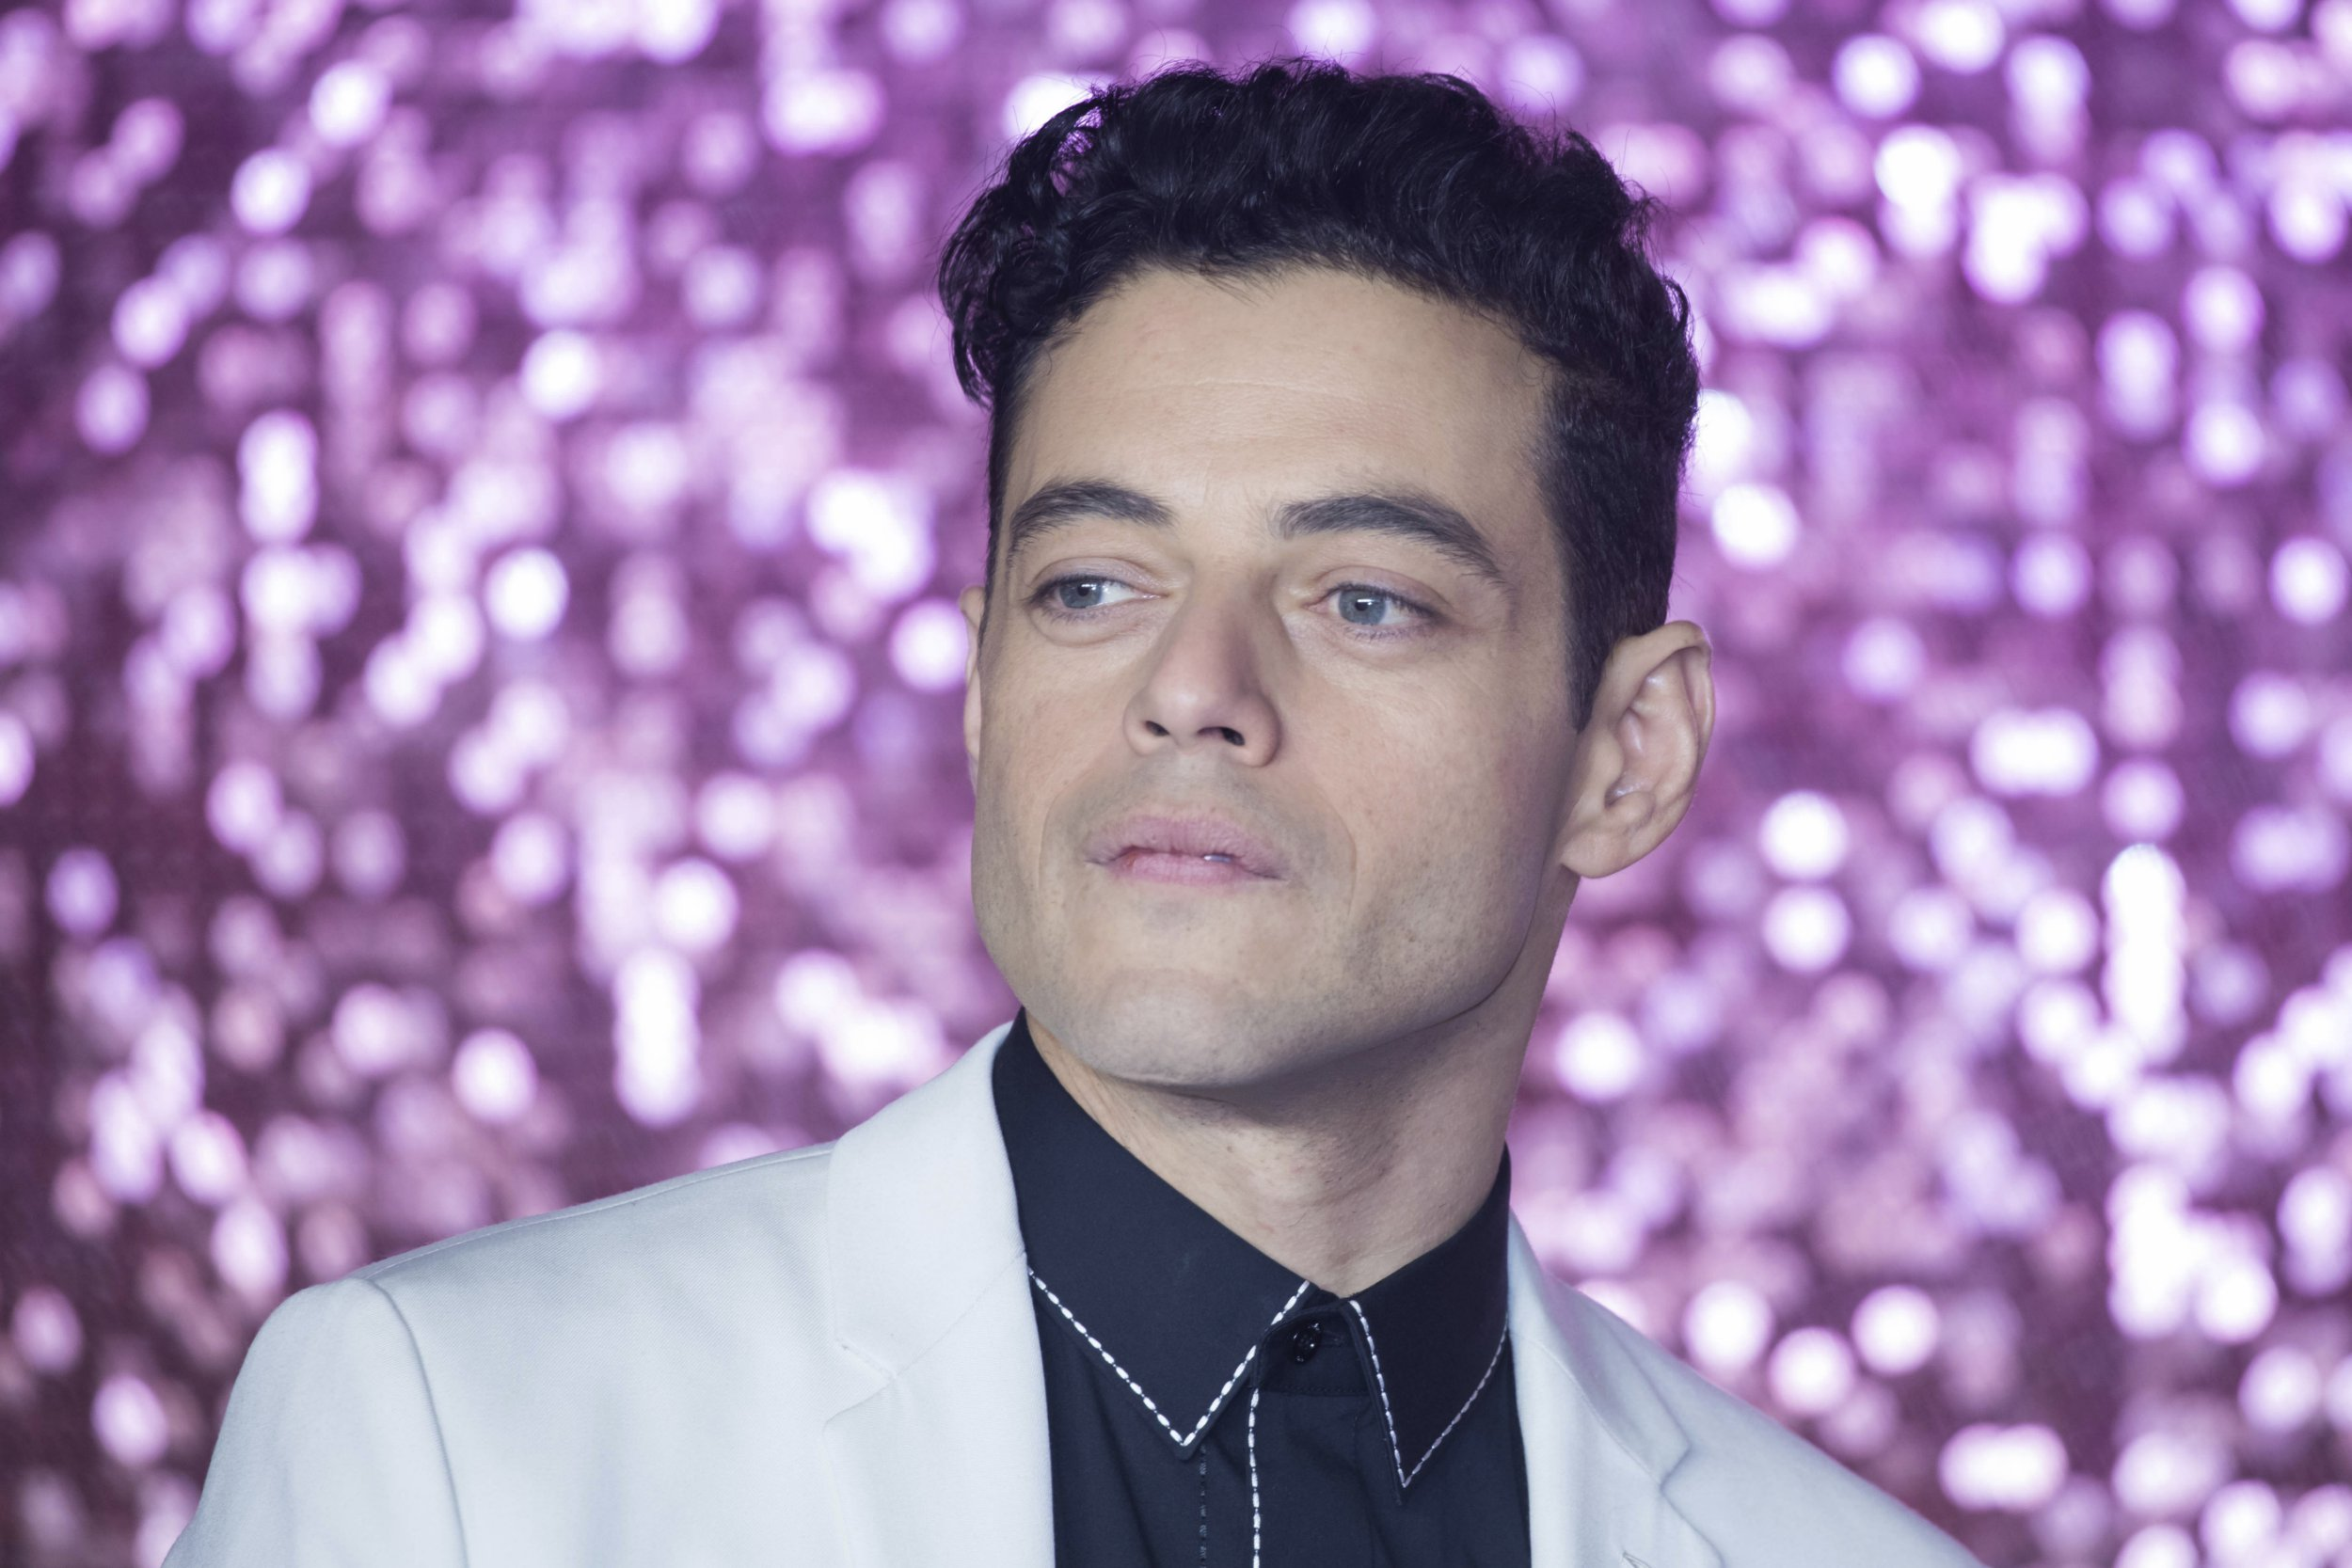 Actor Rami Malek poses for photographers upon arrival at the World premiere of the film 'Bohemian Rhapsody' in London, Tuesday, Oct. 23, 2018. (Photo by Vianney Le Caer/Invision/AP)